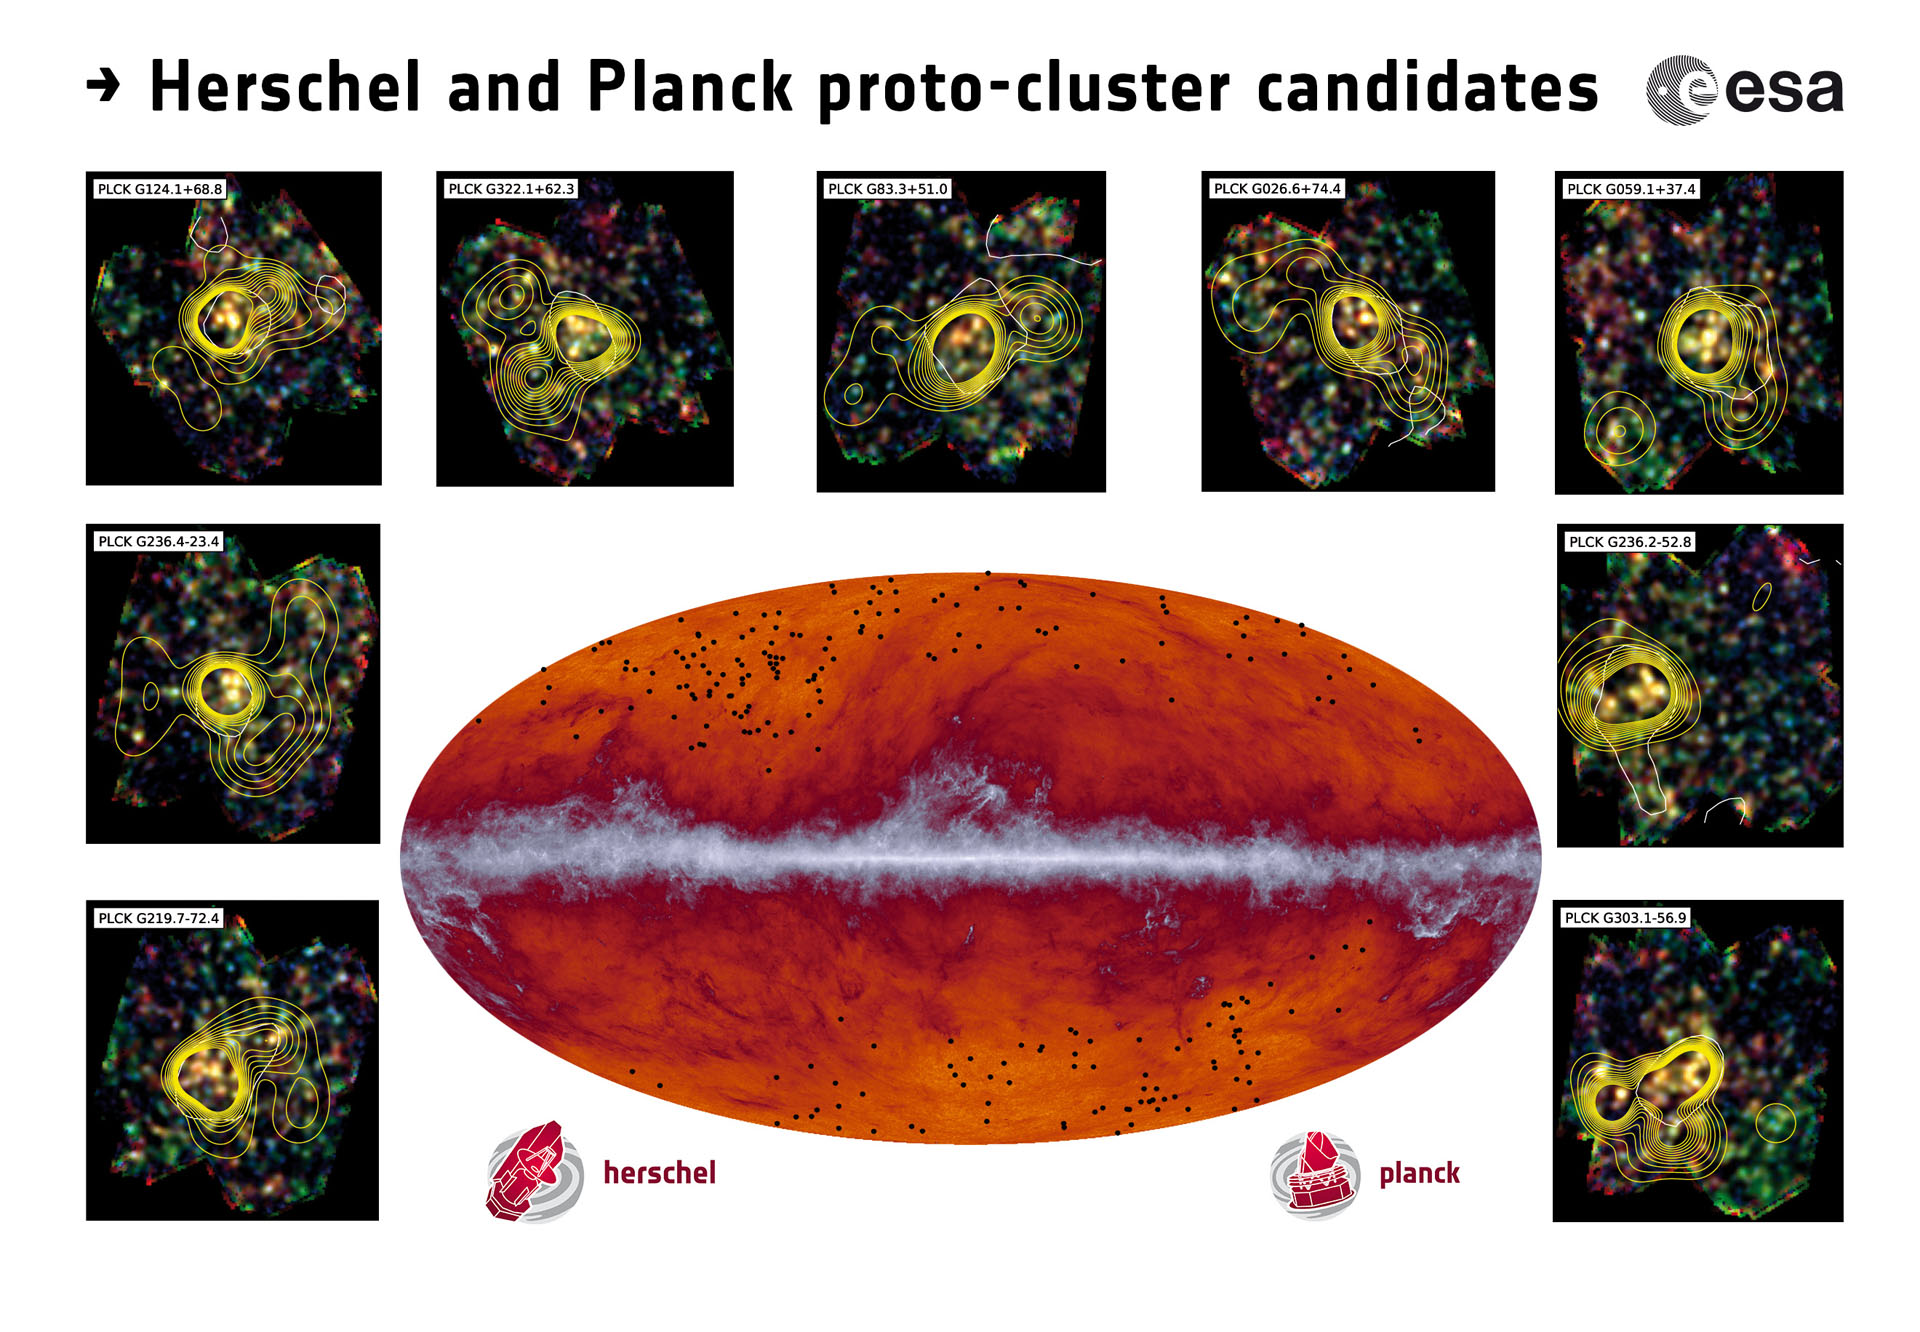 Proto-cluster candidates. Copyright ESA and the Planck Collaboration/ H. Dole, D. Guéry & G. Hurier, IAS/University Paris-Sud/CNRS/CNES